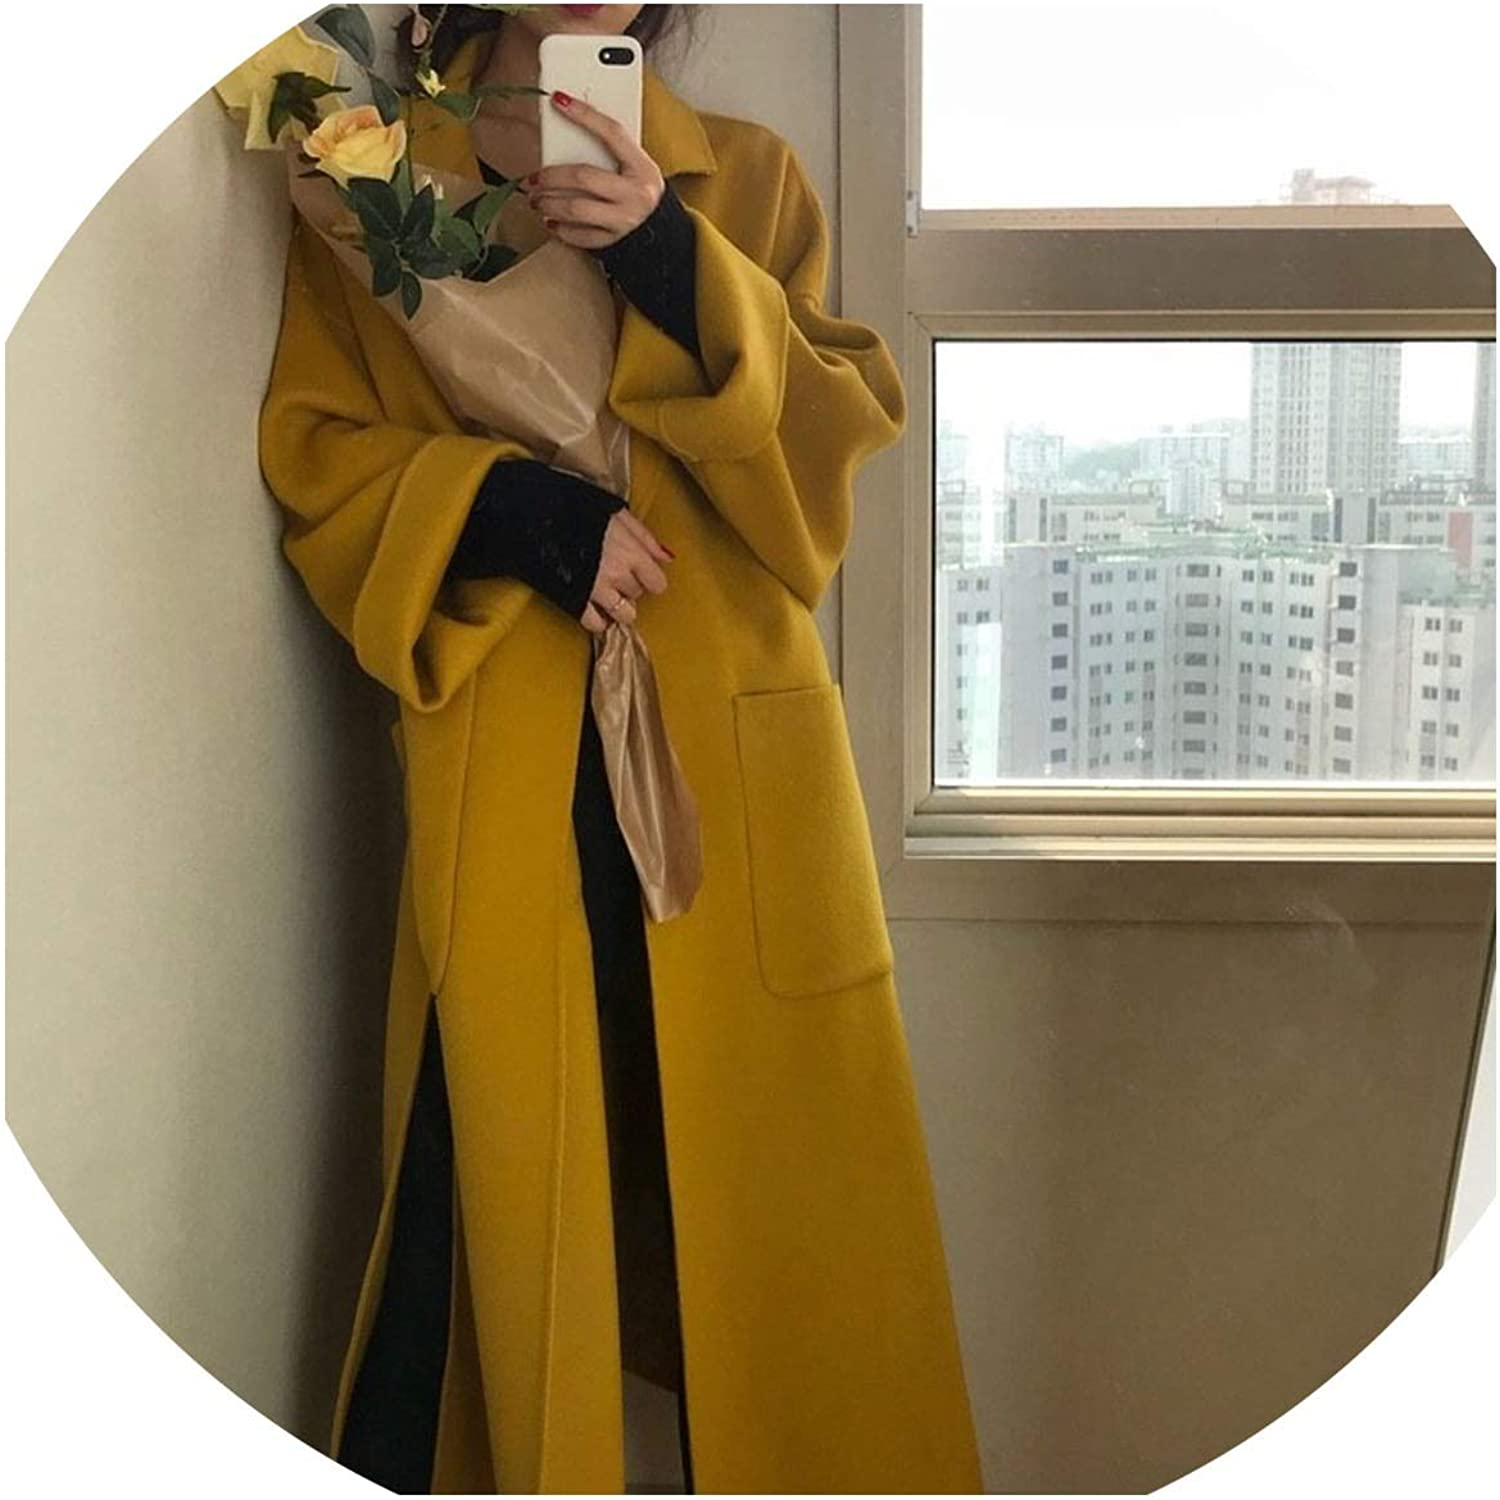 colorfulspace Napole Sashes Pockets Solid Long Coat Casual Loose Vintage Women Jacket,Ginger Yellow,One Size